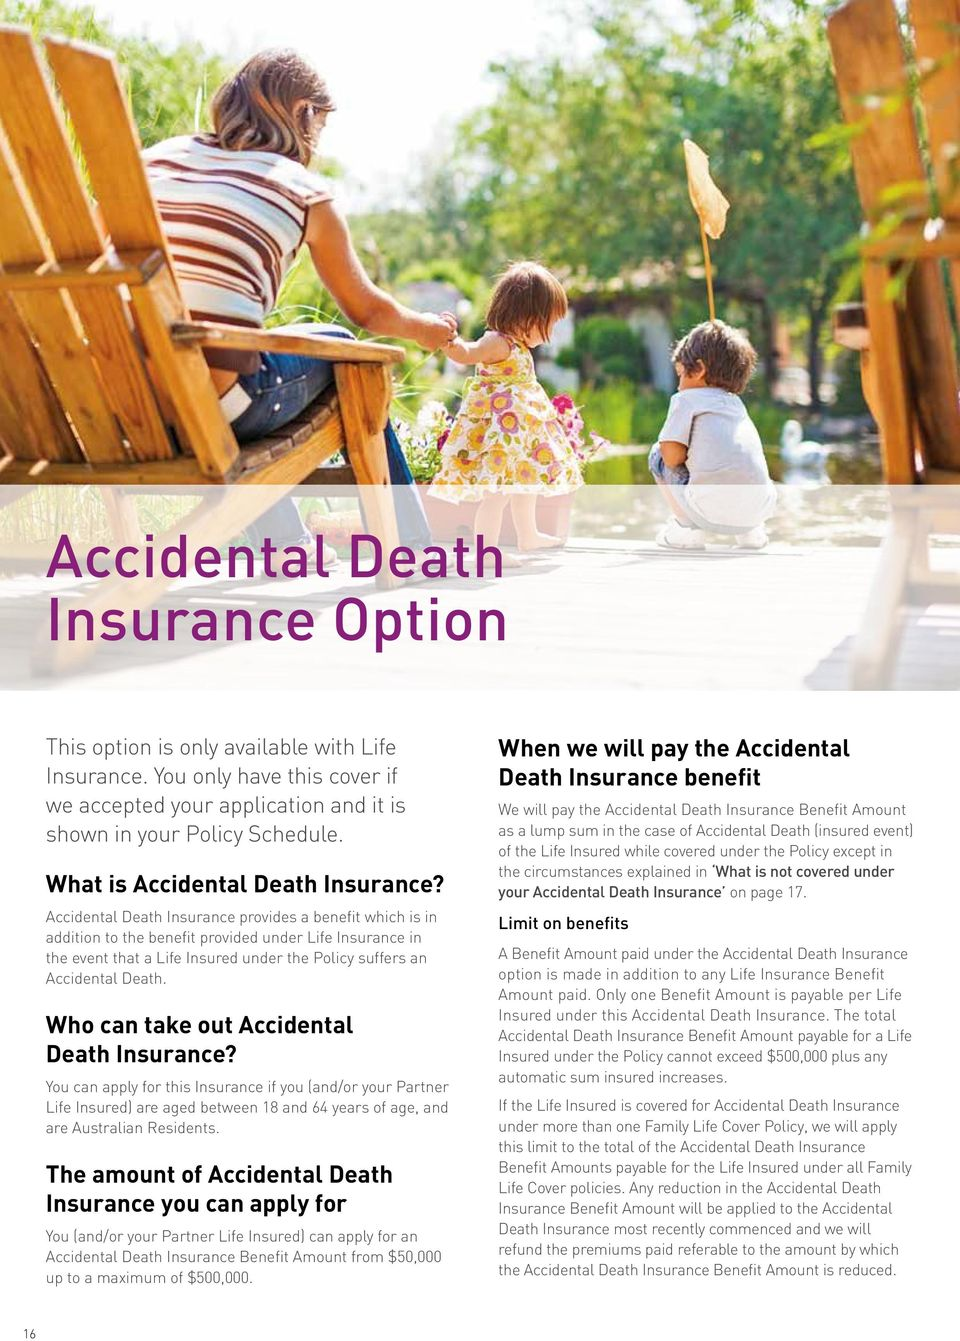 Accidental Death Insurance provides a benefit which is in addition to the benefit provided under Life Insurance in the event that a Life Insured under the Policy suffers an Accidental Death.